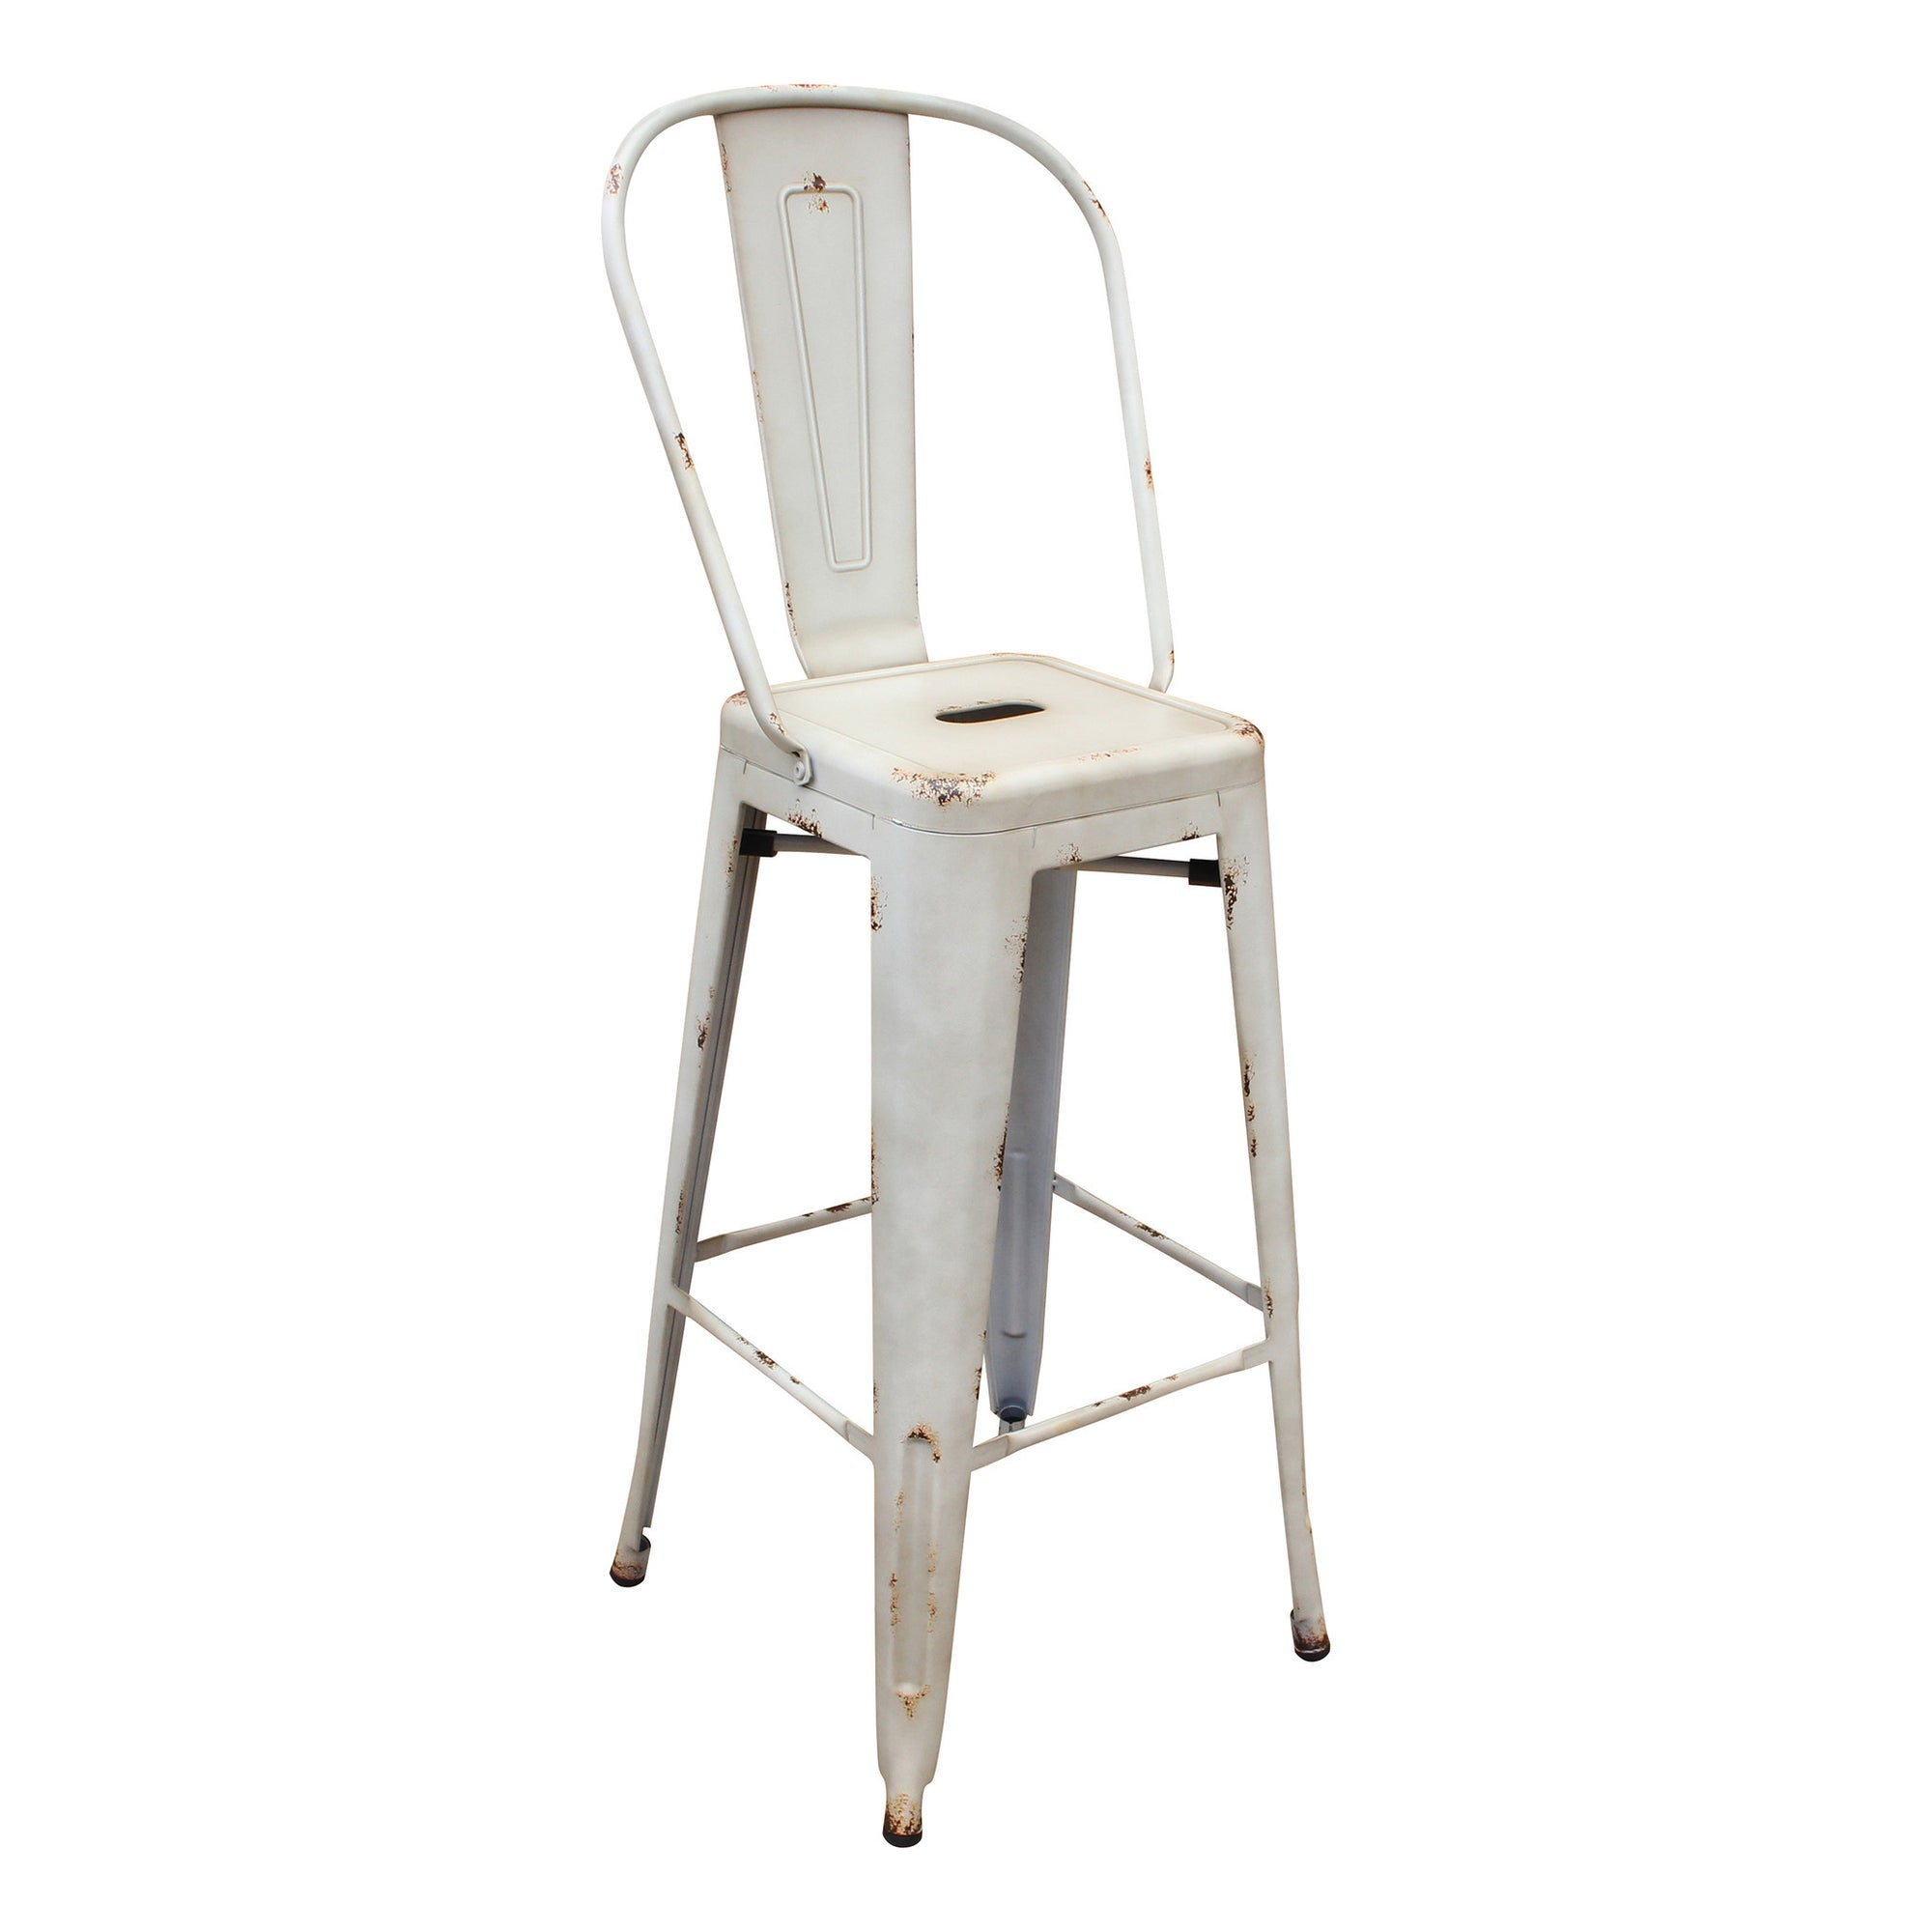 Bar Stool - Distressed Antique Vintage Bar Stool BP8413-DW